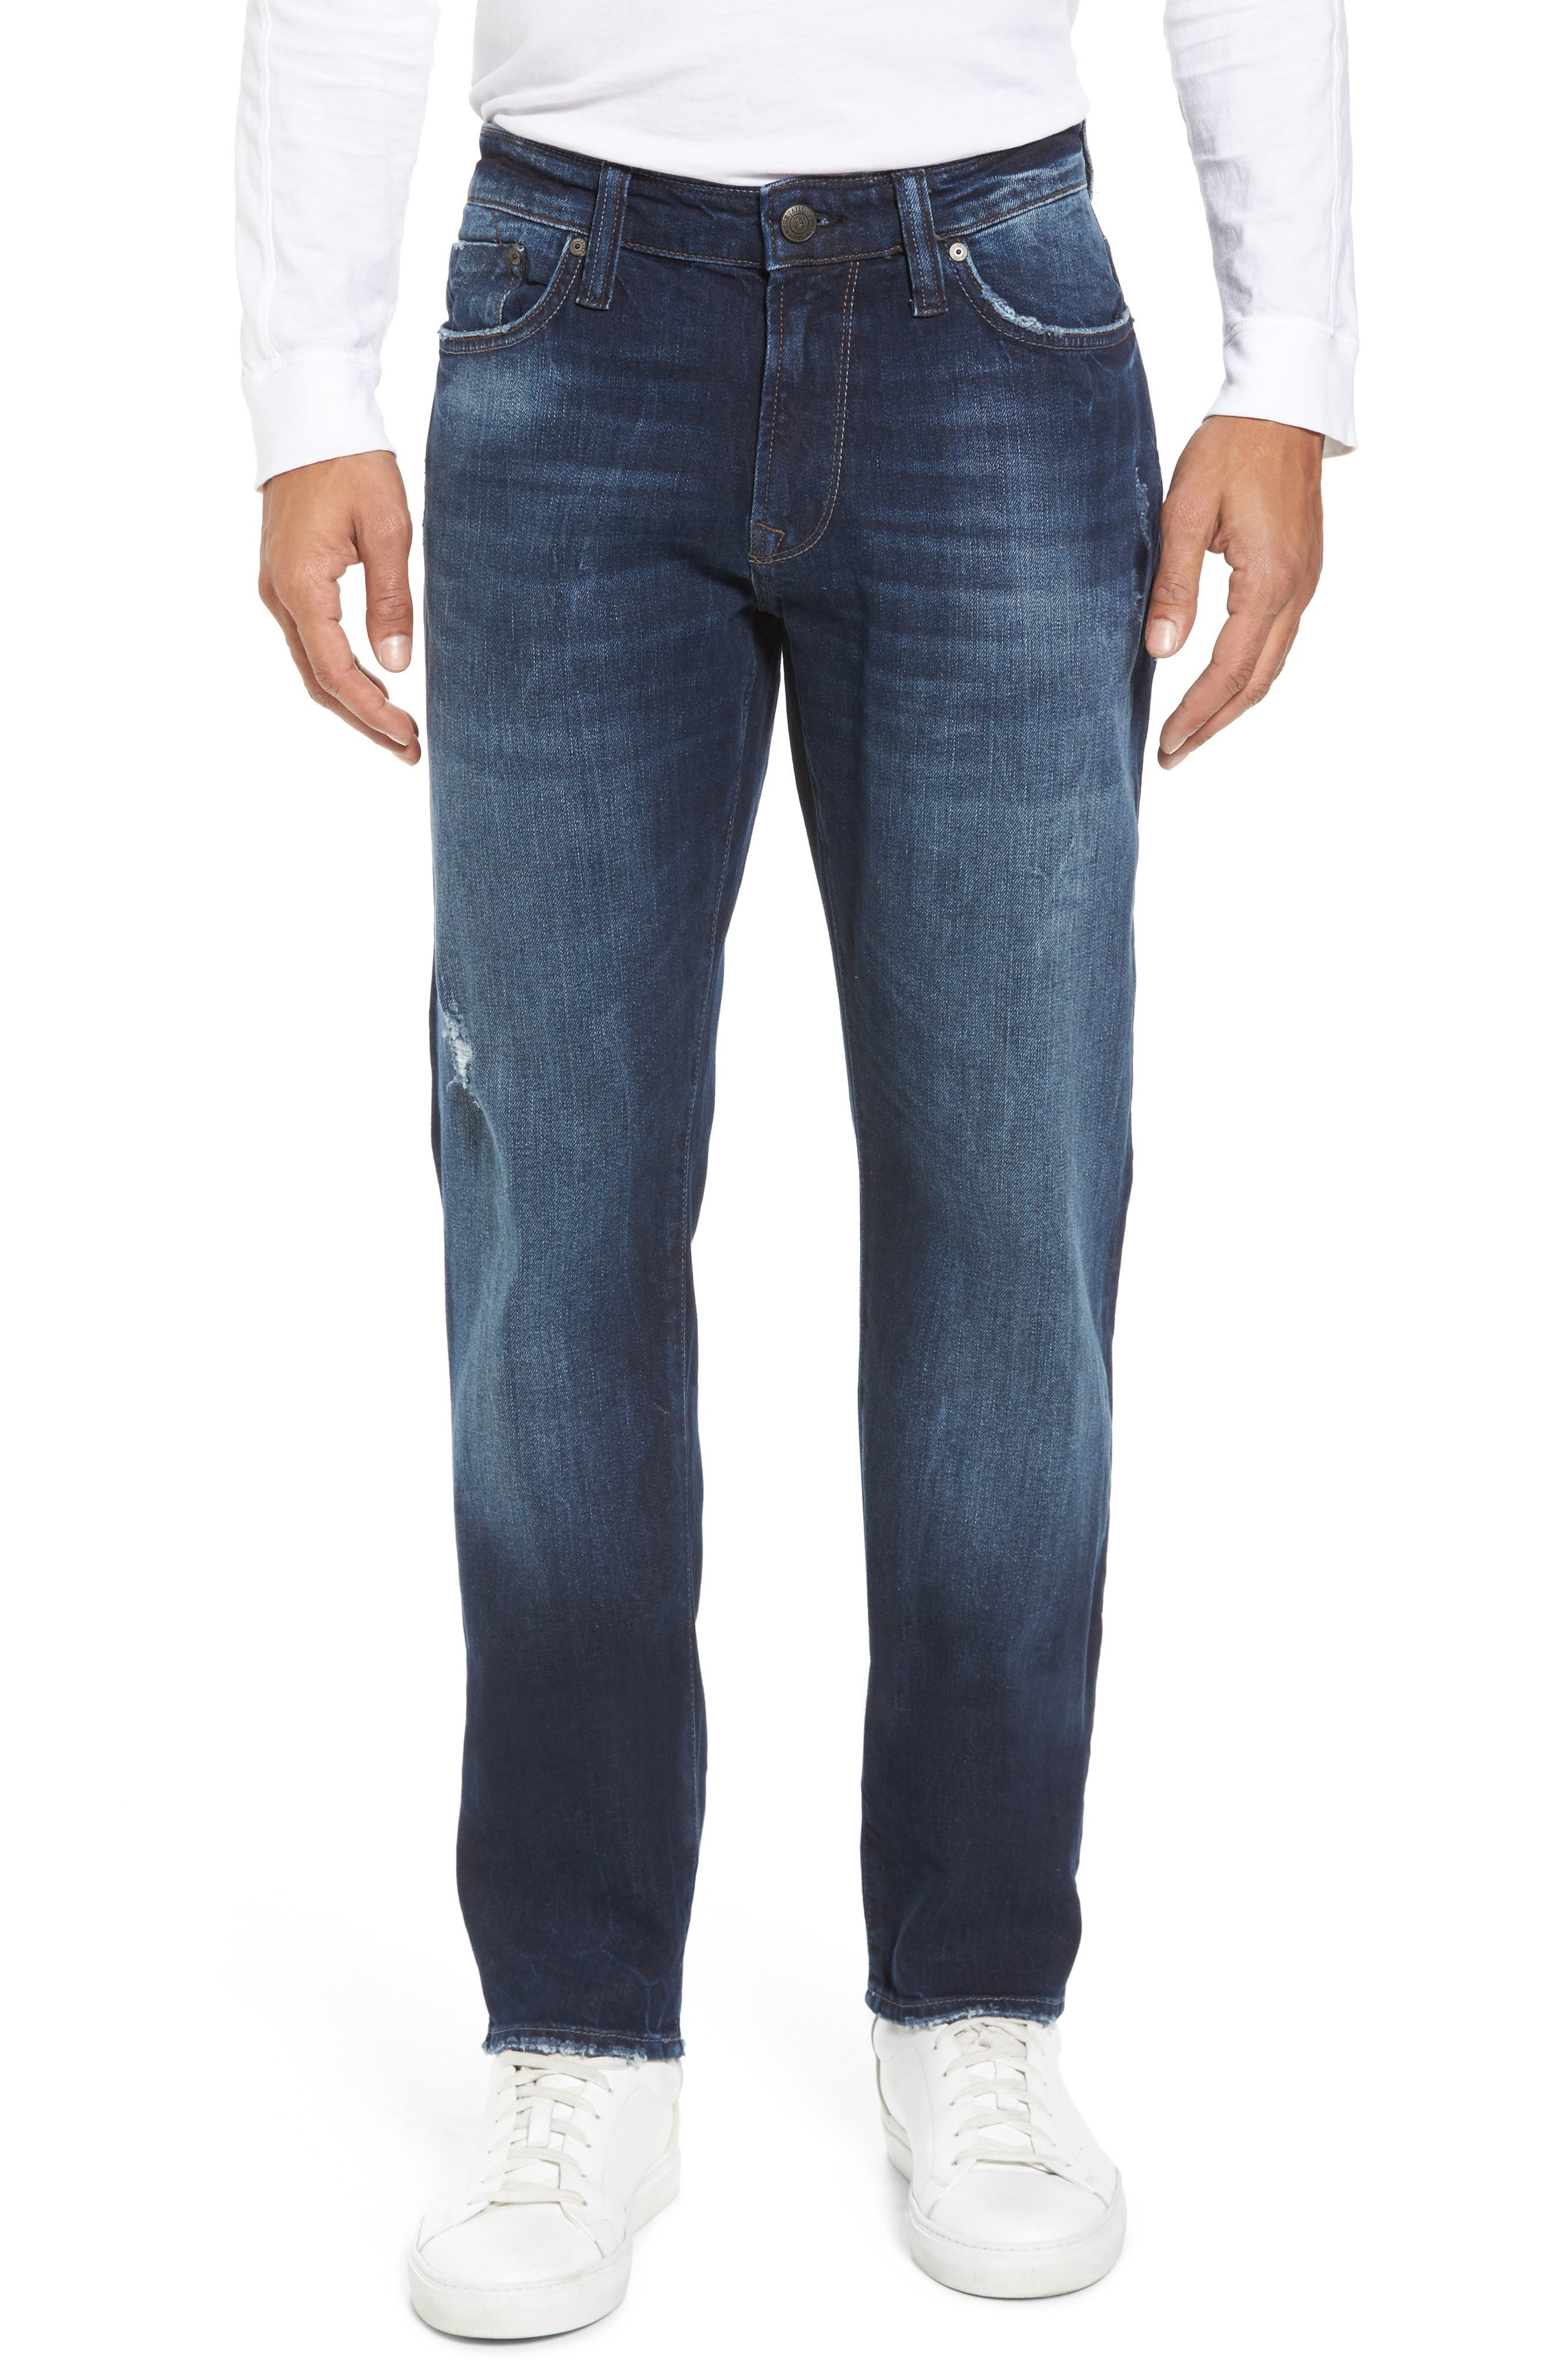 Alternate Image 1 Selected - Mavi Jeans Marcus Slim Straight Leg Jeans (Deep Authentic Vintage)